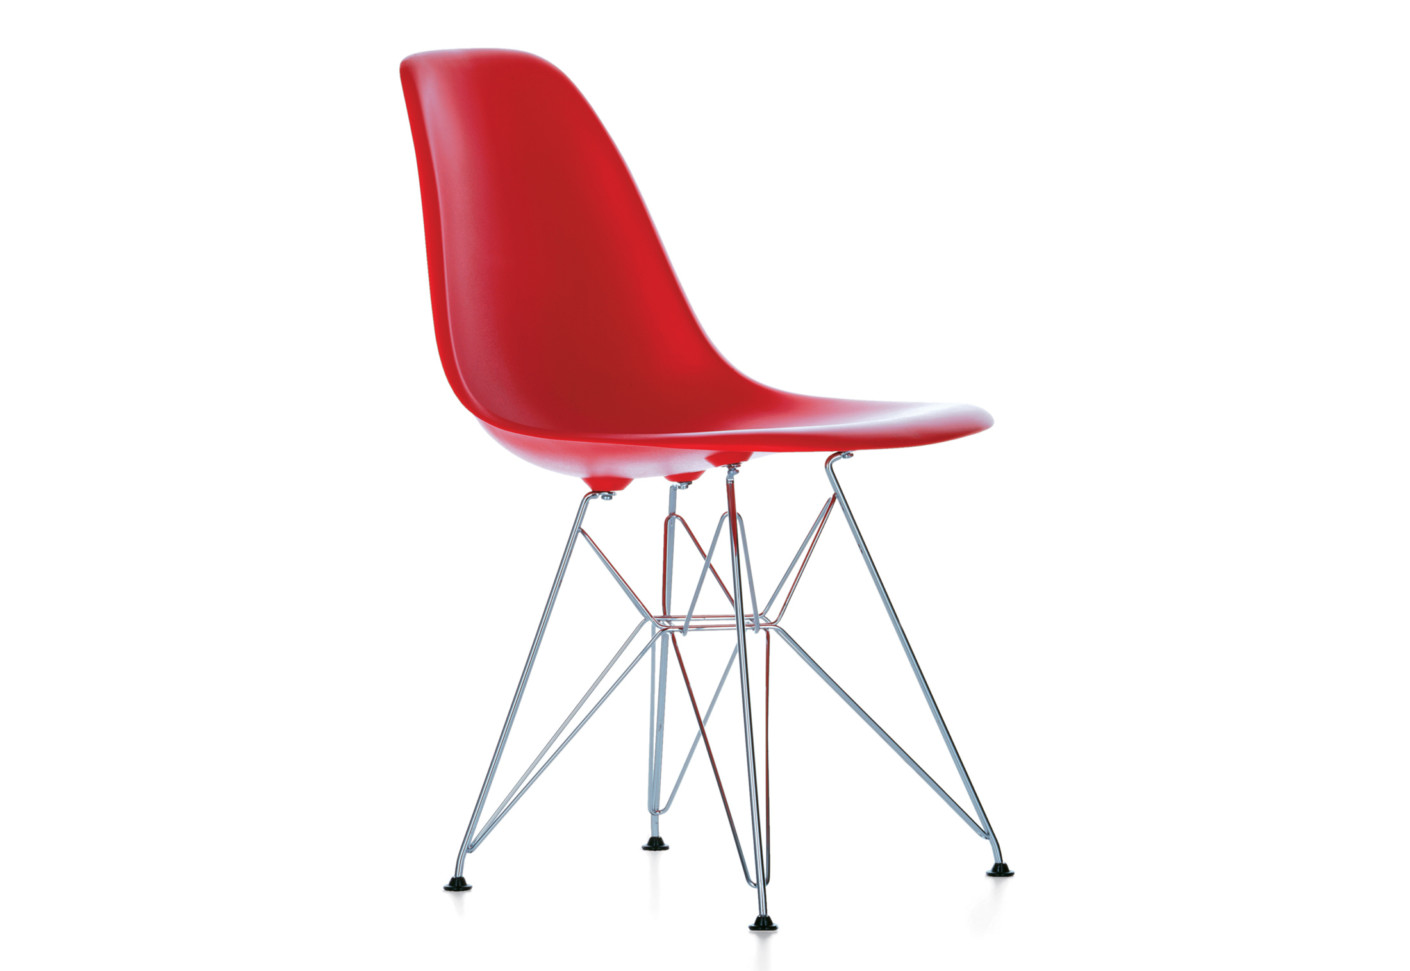 Eames plastic side chair dsr by vitra stylepark for Vitra eames kopie